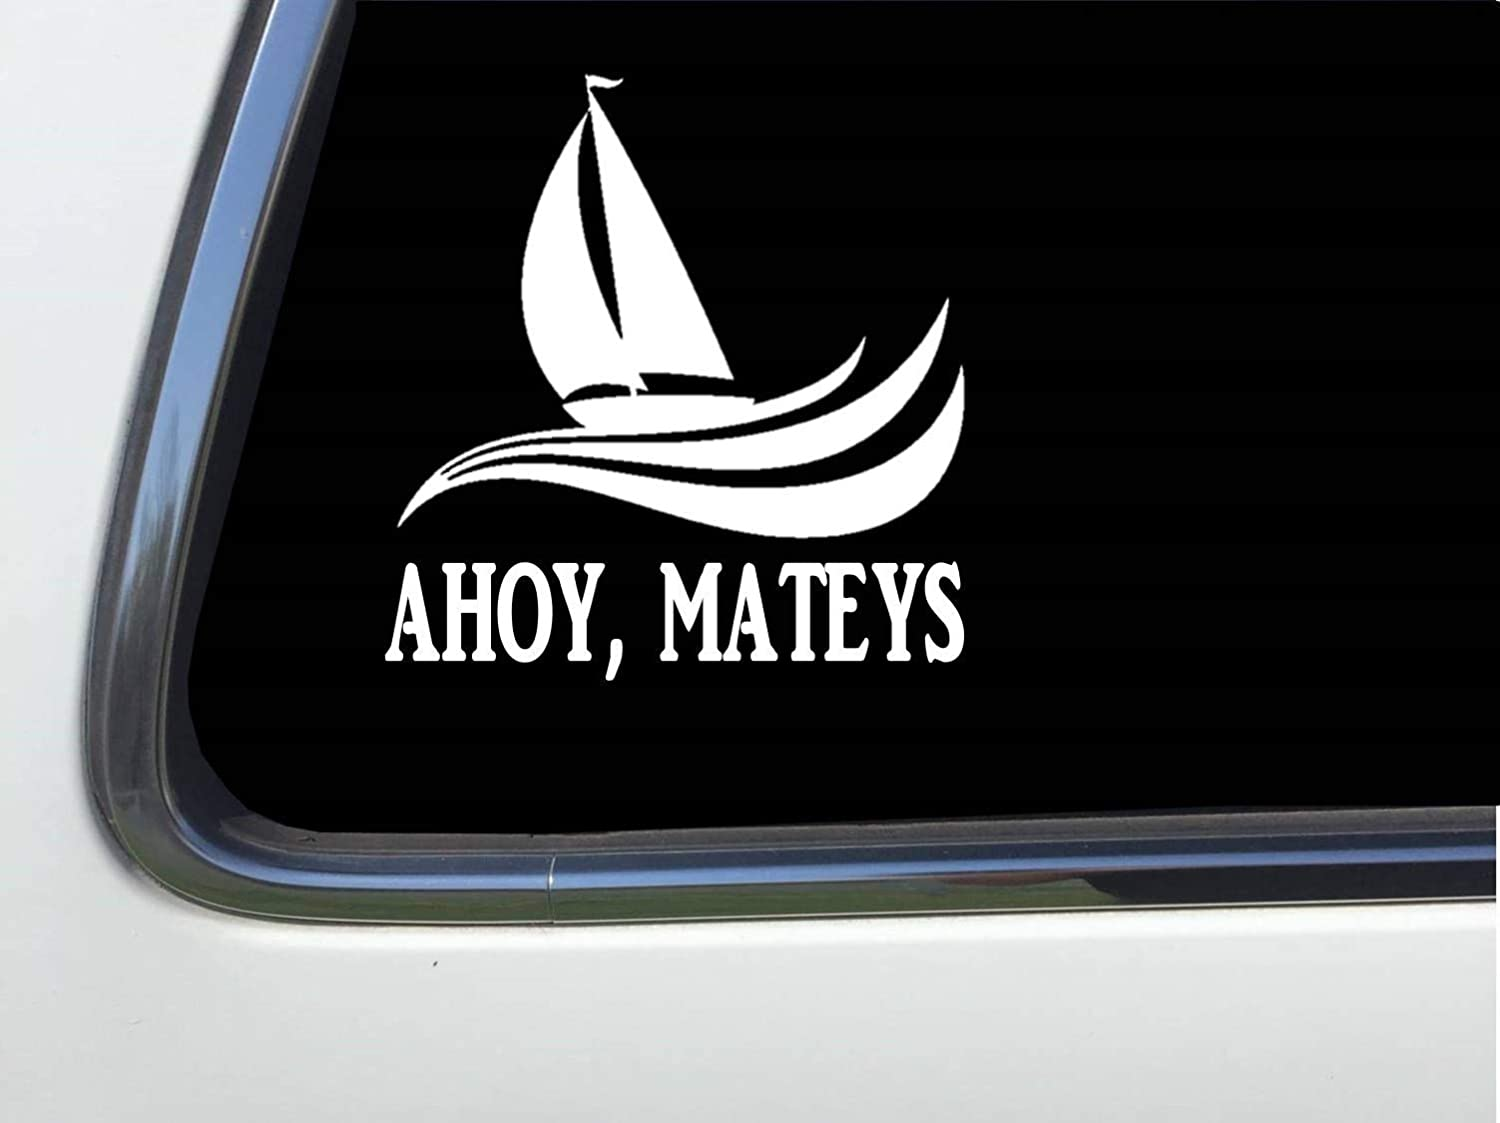 AHOY MATES with sailboat and waves 6 vinyl sticker decal HM1722 Thatlilcabin